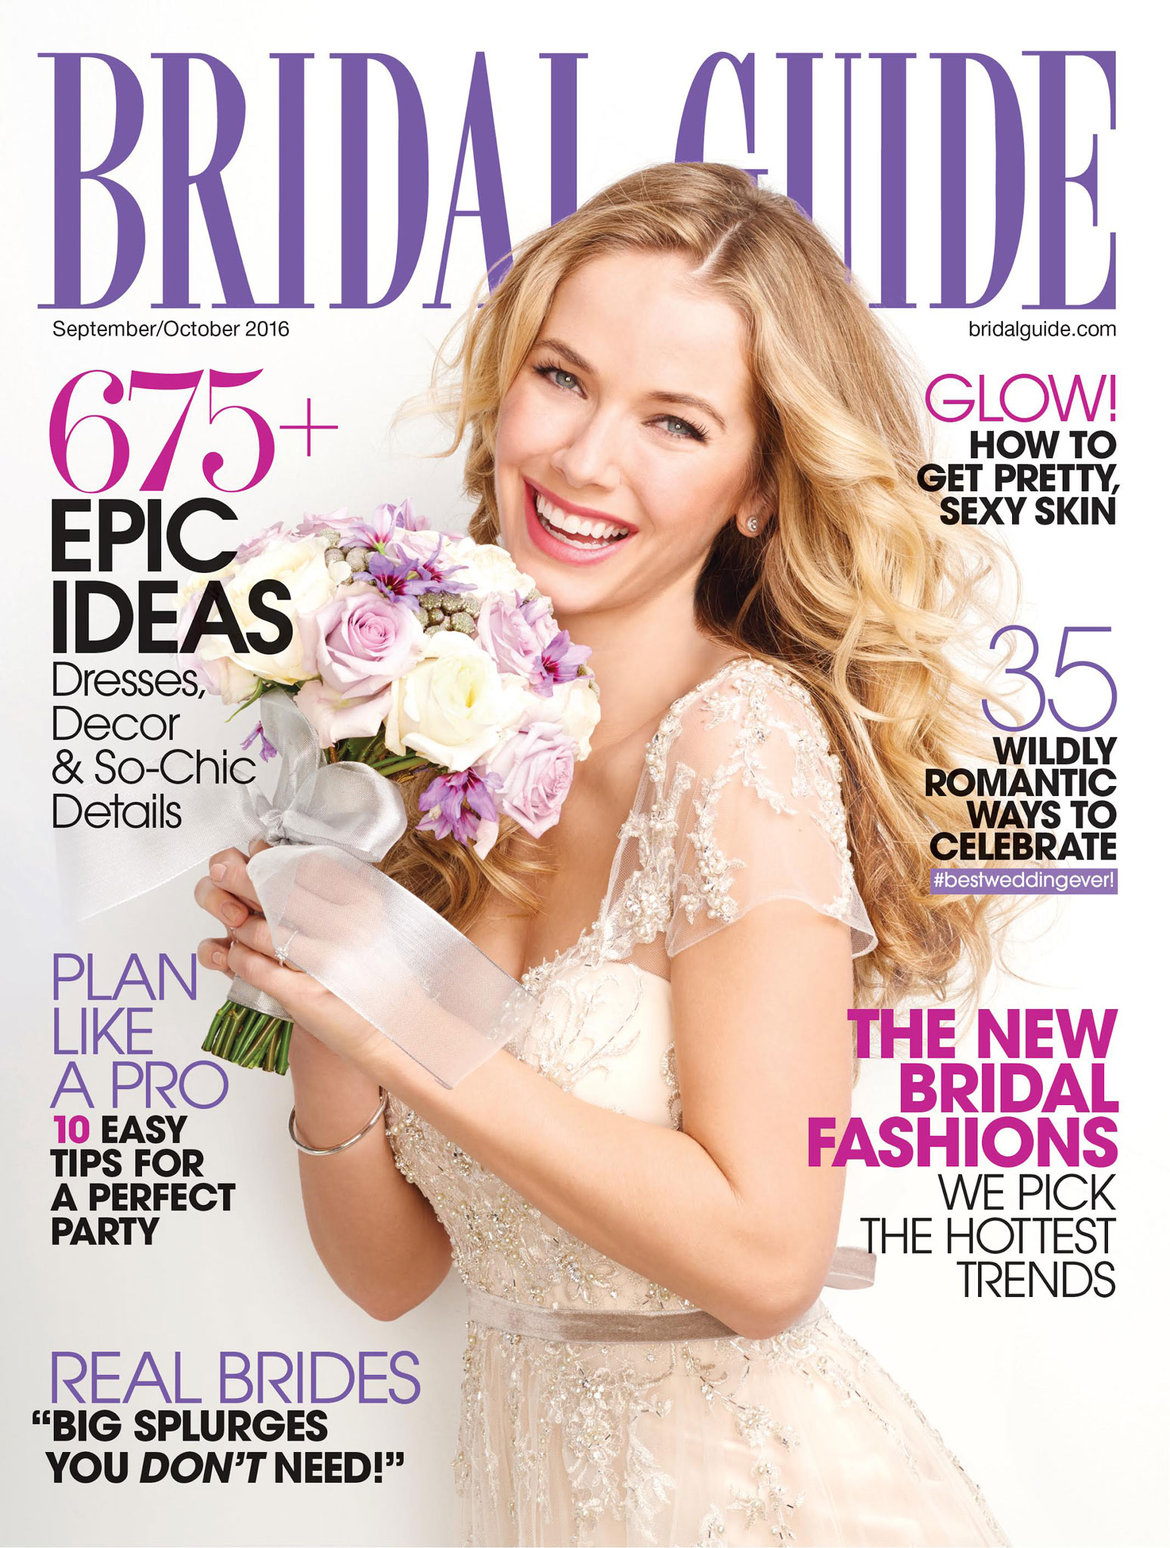 bridal guide september october 2016